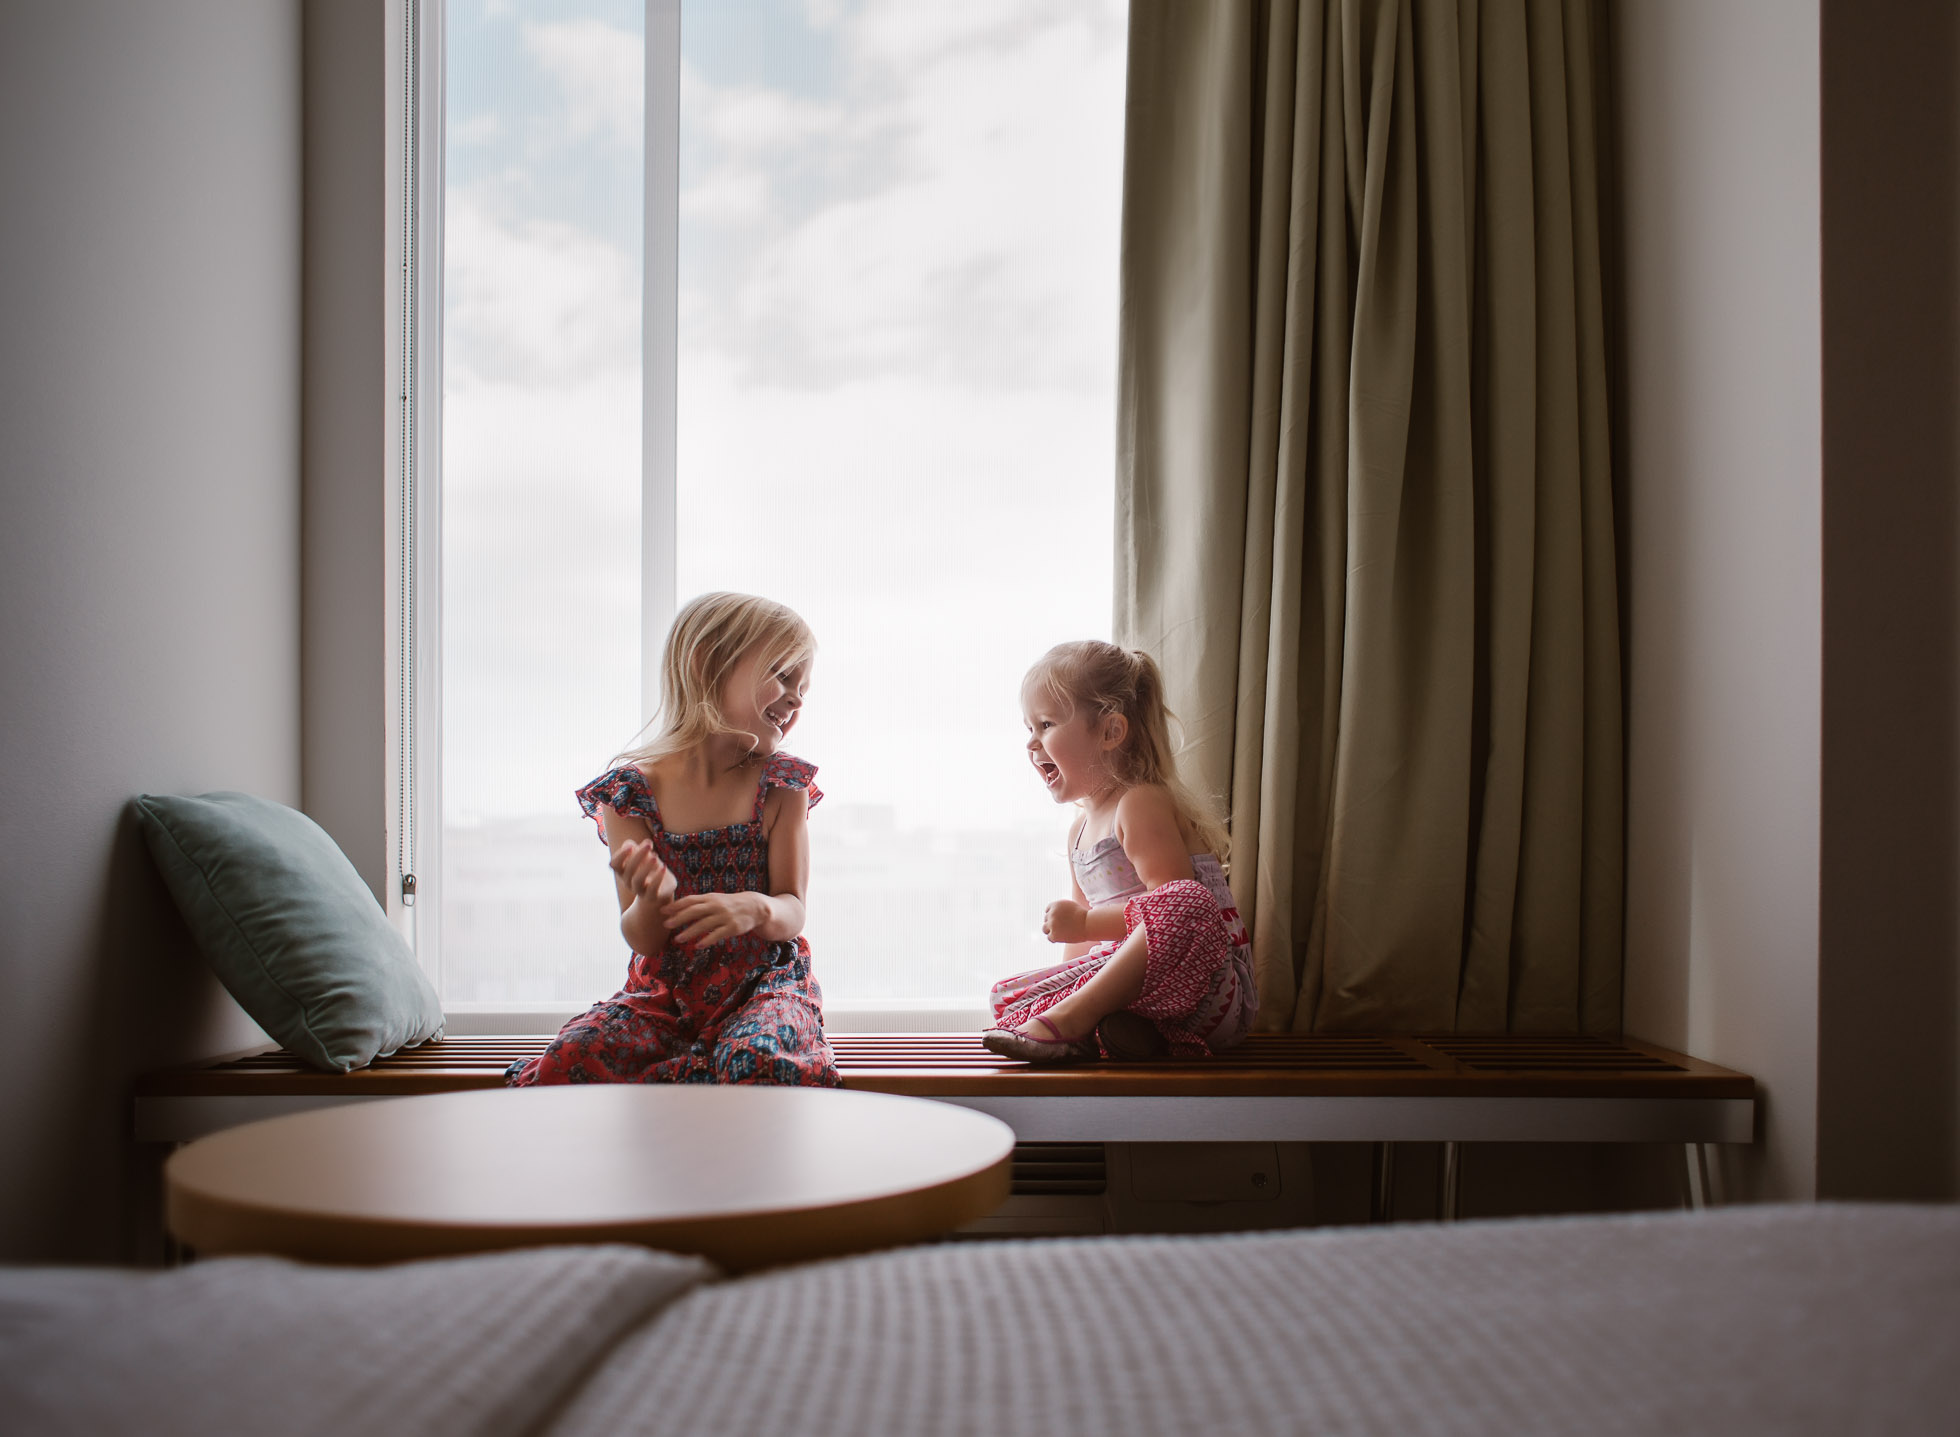 sister laughs young girls sitting in window hotel edmond ok photographer oklahoma city natural light photographer kate luber photography